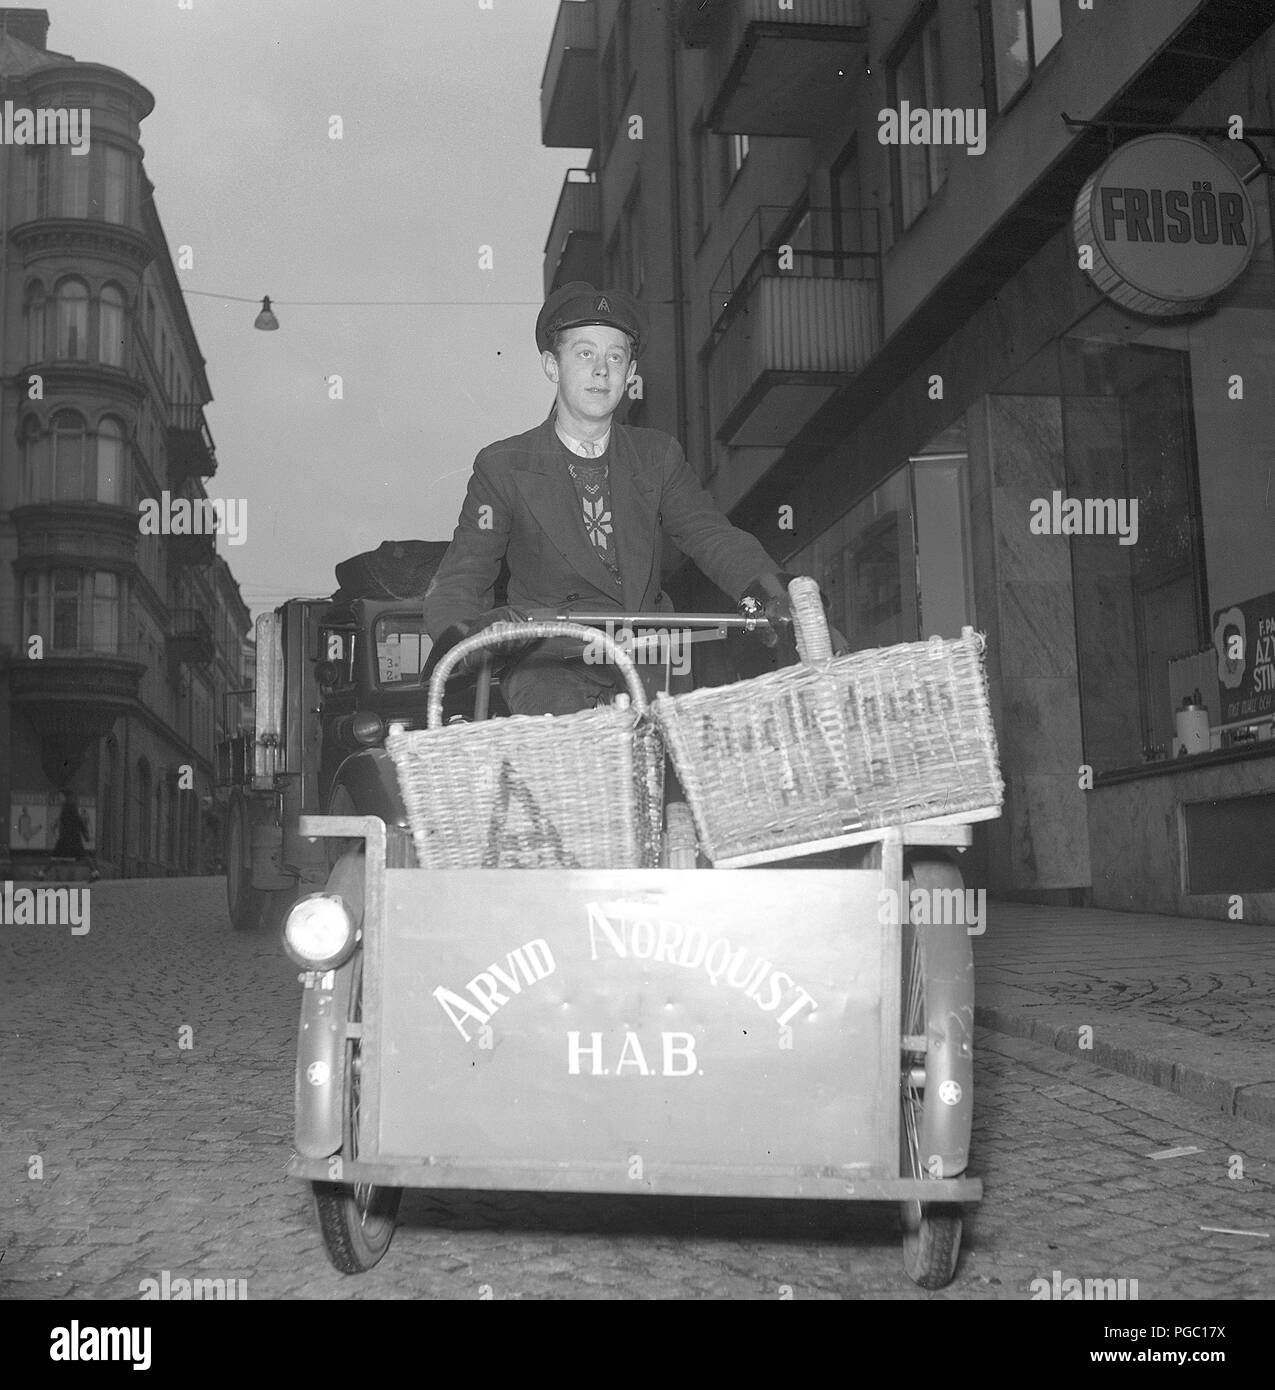 1940s bicycle transportation. A man working as a delivery man with groceries on his bicycle to be delivered to clients from the company Arvid Nordquist. Sweden 1940s.  Photo Kristoffersson A125-2 - Stock Image